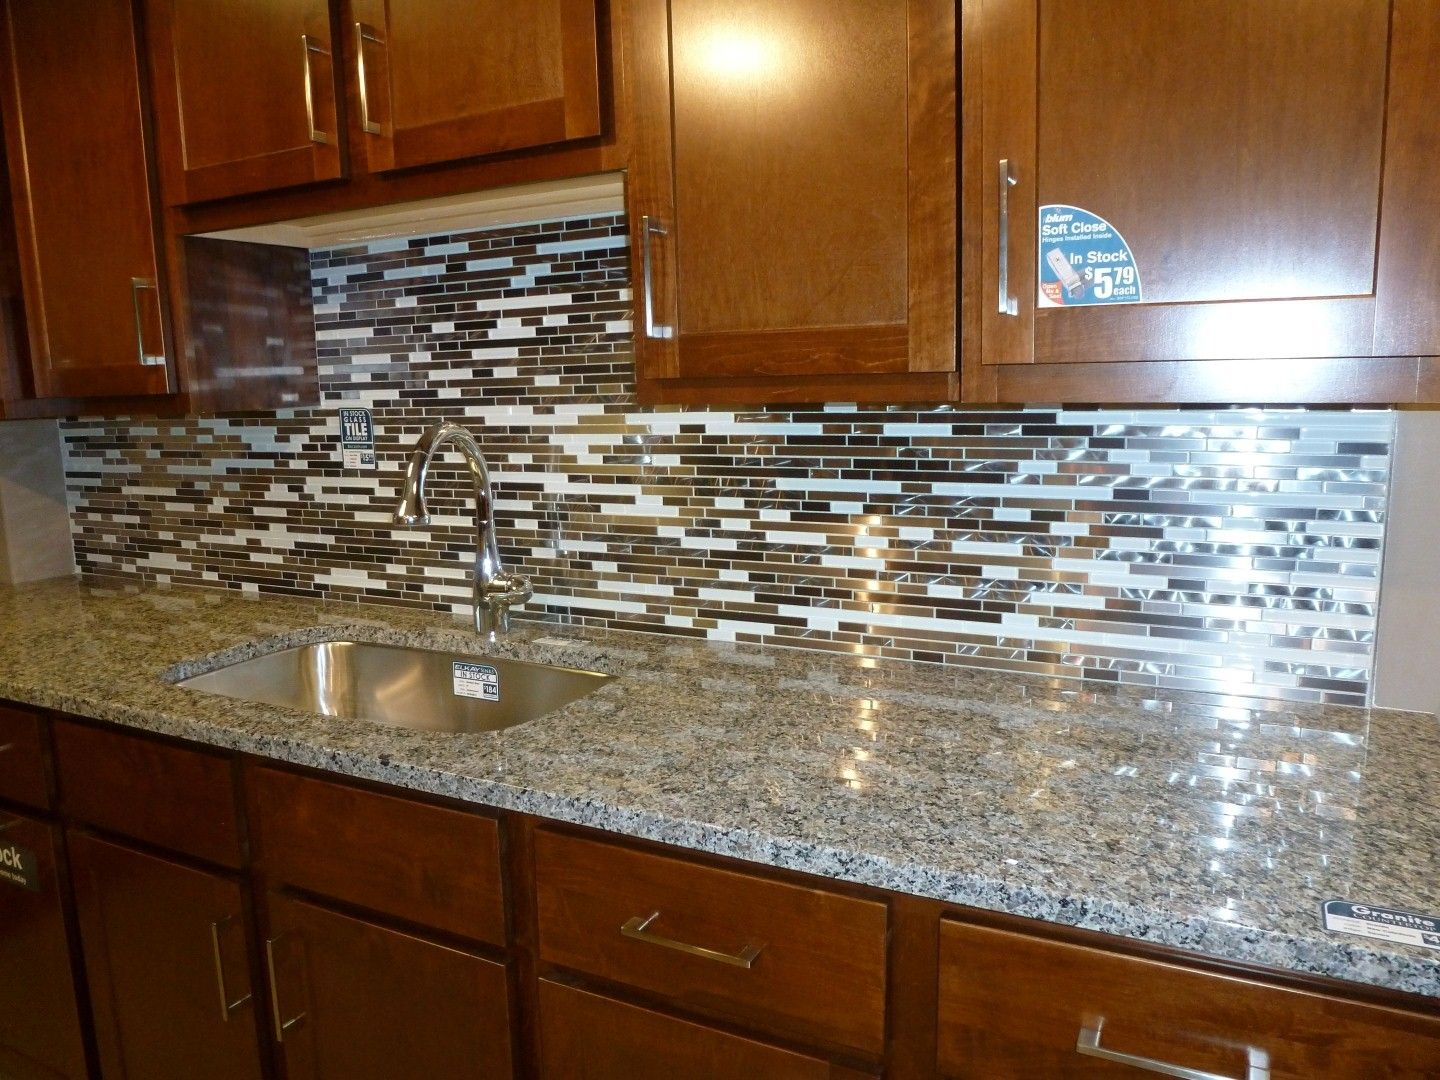 Kitchen Astounding Kitchen Backsplash Tile Ideas With Cherry Cabinets Feat Stainless Steel Sink And Arch Faucet On Granite Countertops And Kitchen Vanity